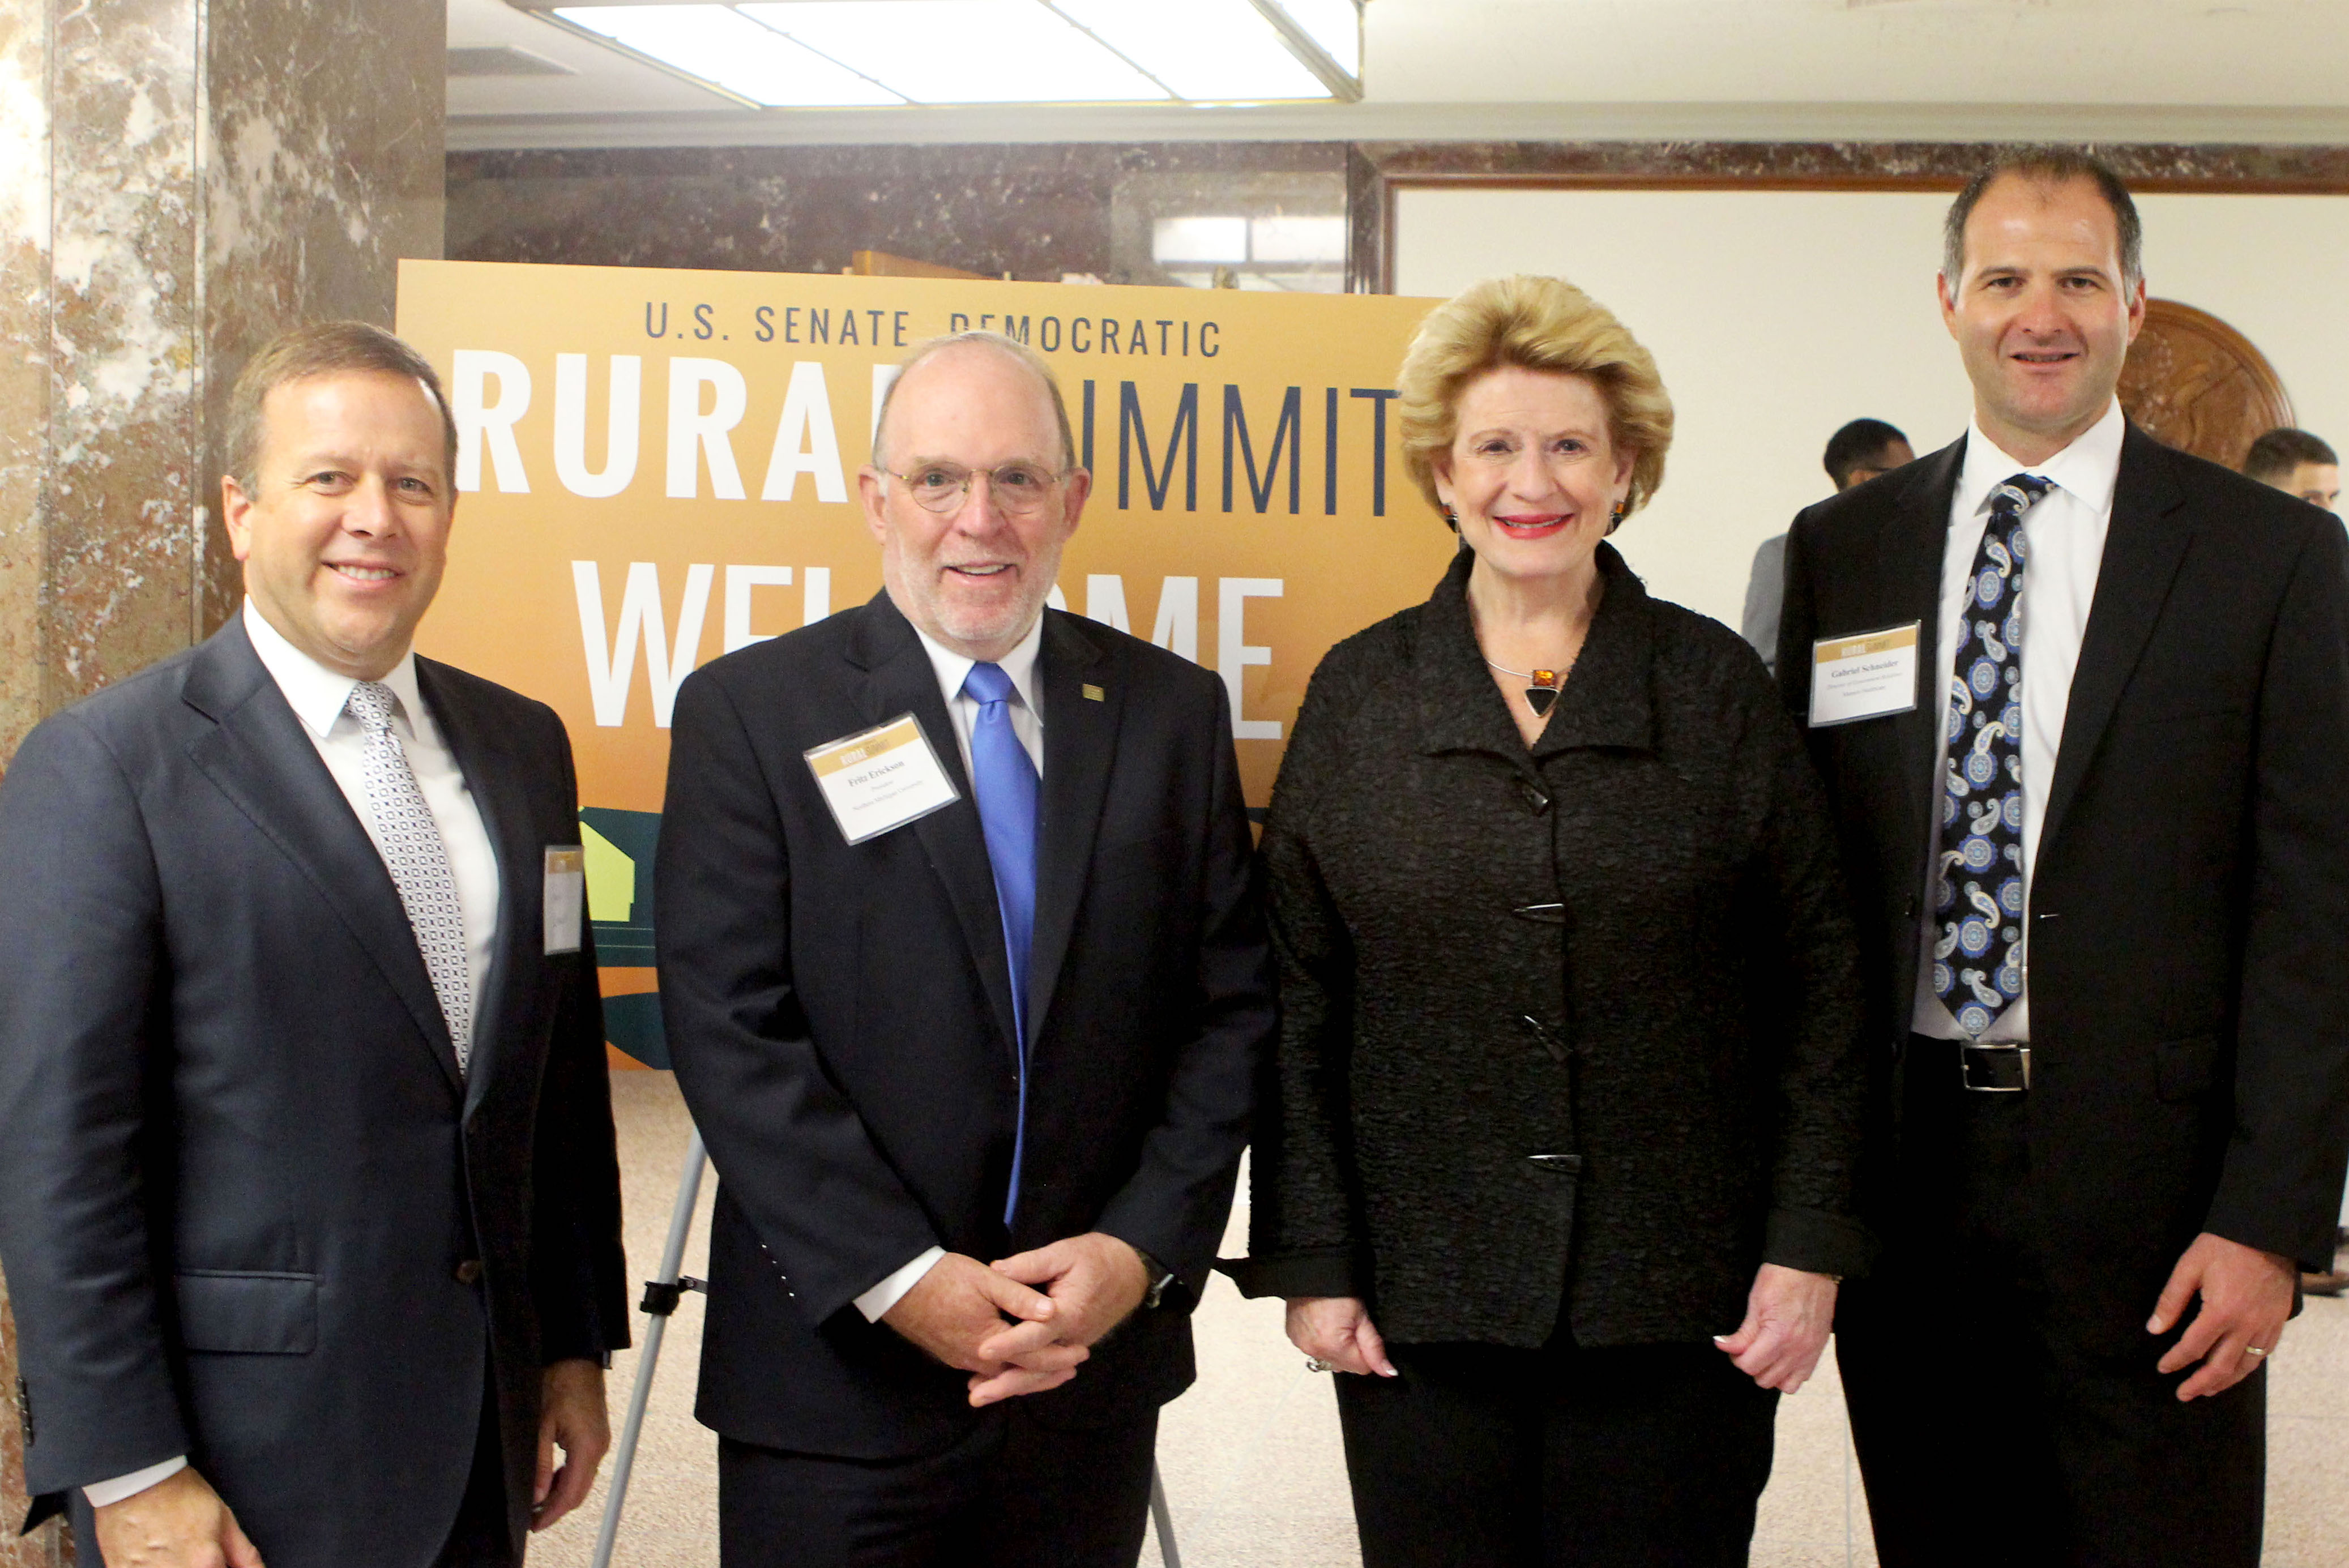 From left: Gavin Leach and Fritz Erickson from NMU, Sen. Debbie Stabenow and Gabriel Schneider of Northern Strategies 360 in Traverse City (the other Michigan attendee invited).